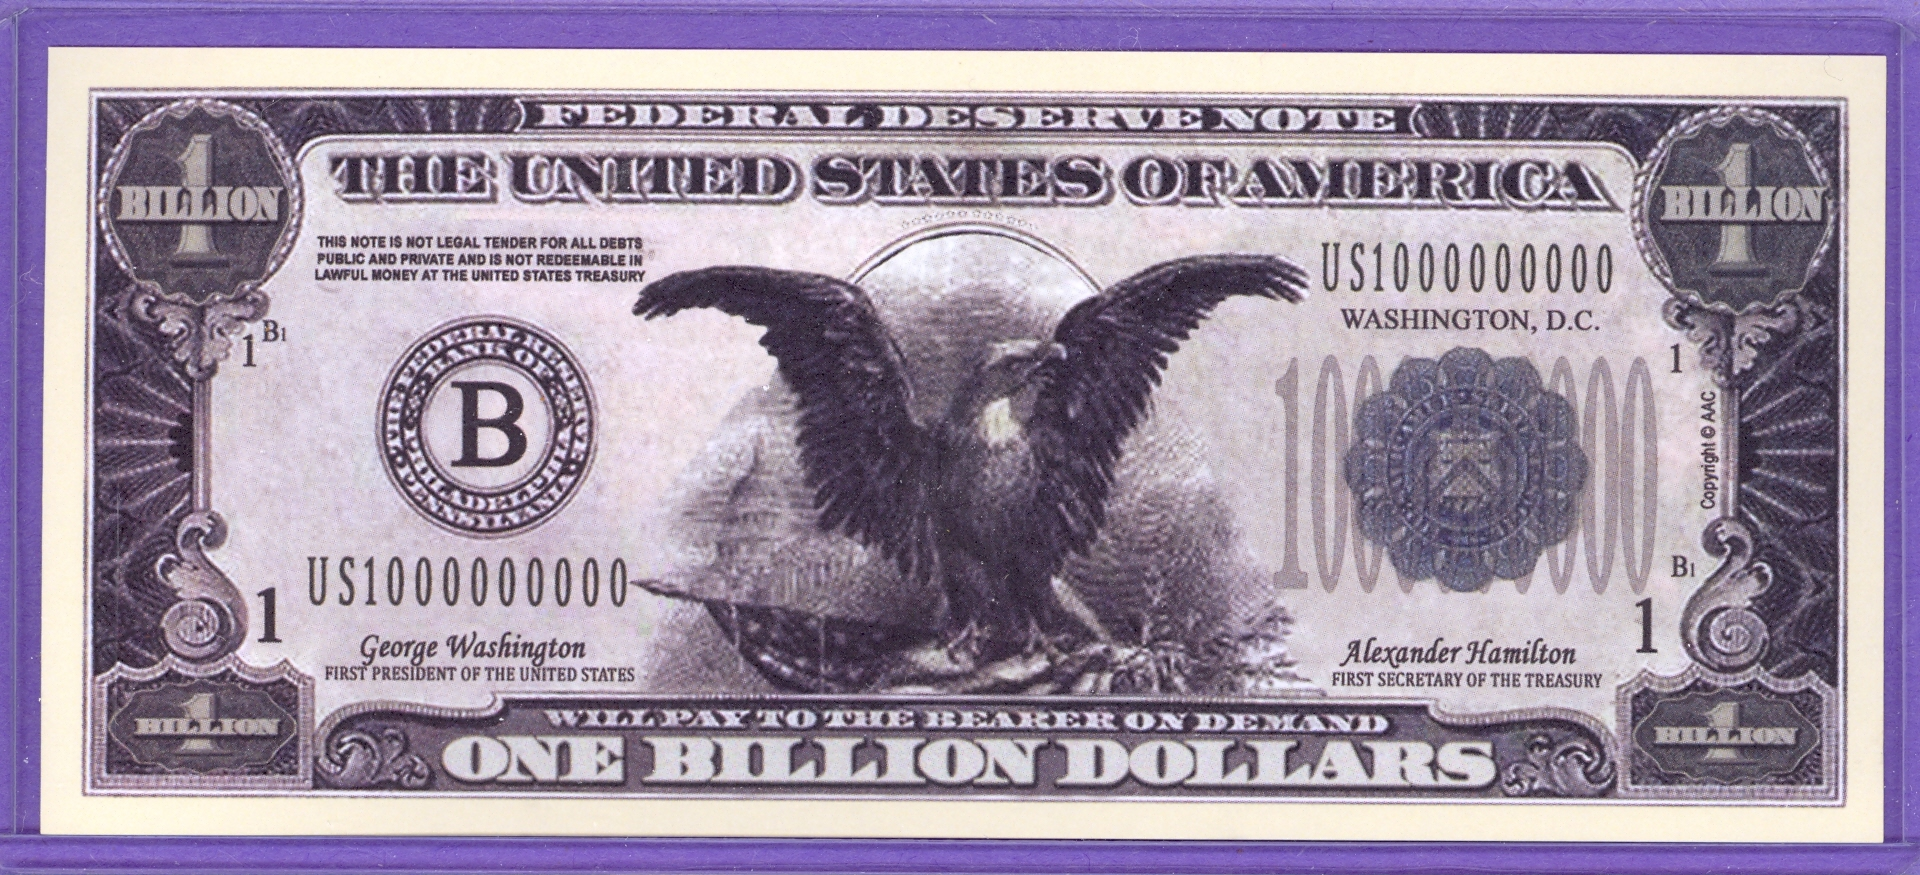 One Billion Dollar Fantasy or Novelty Note - Eagles